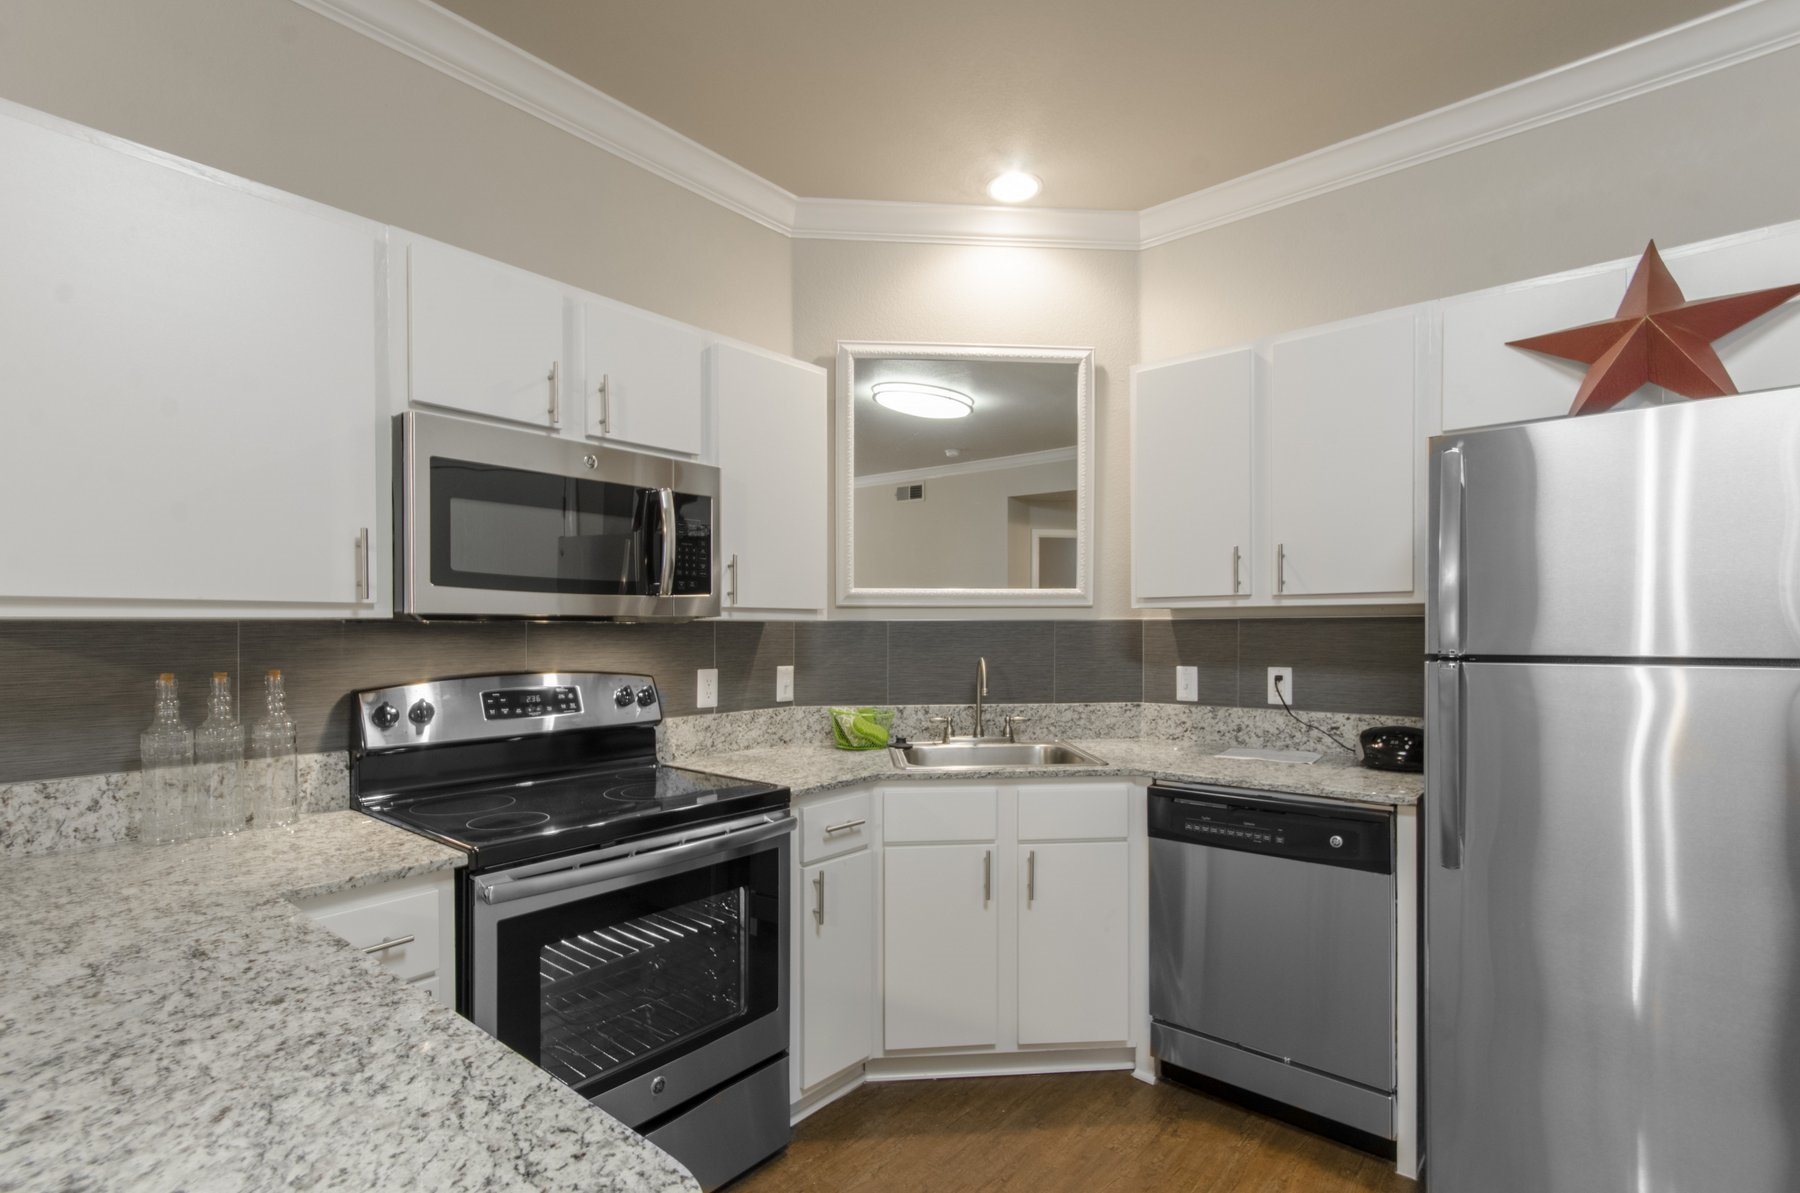 Timber Links at Denton Luxury Apartment Homes, Denton Texas - UNT and TWU College Housing, Apartments